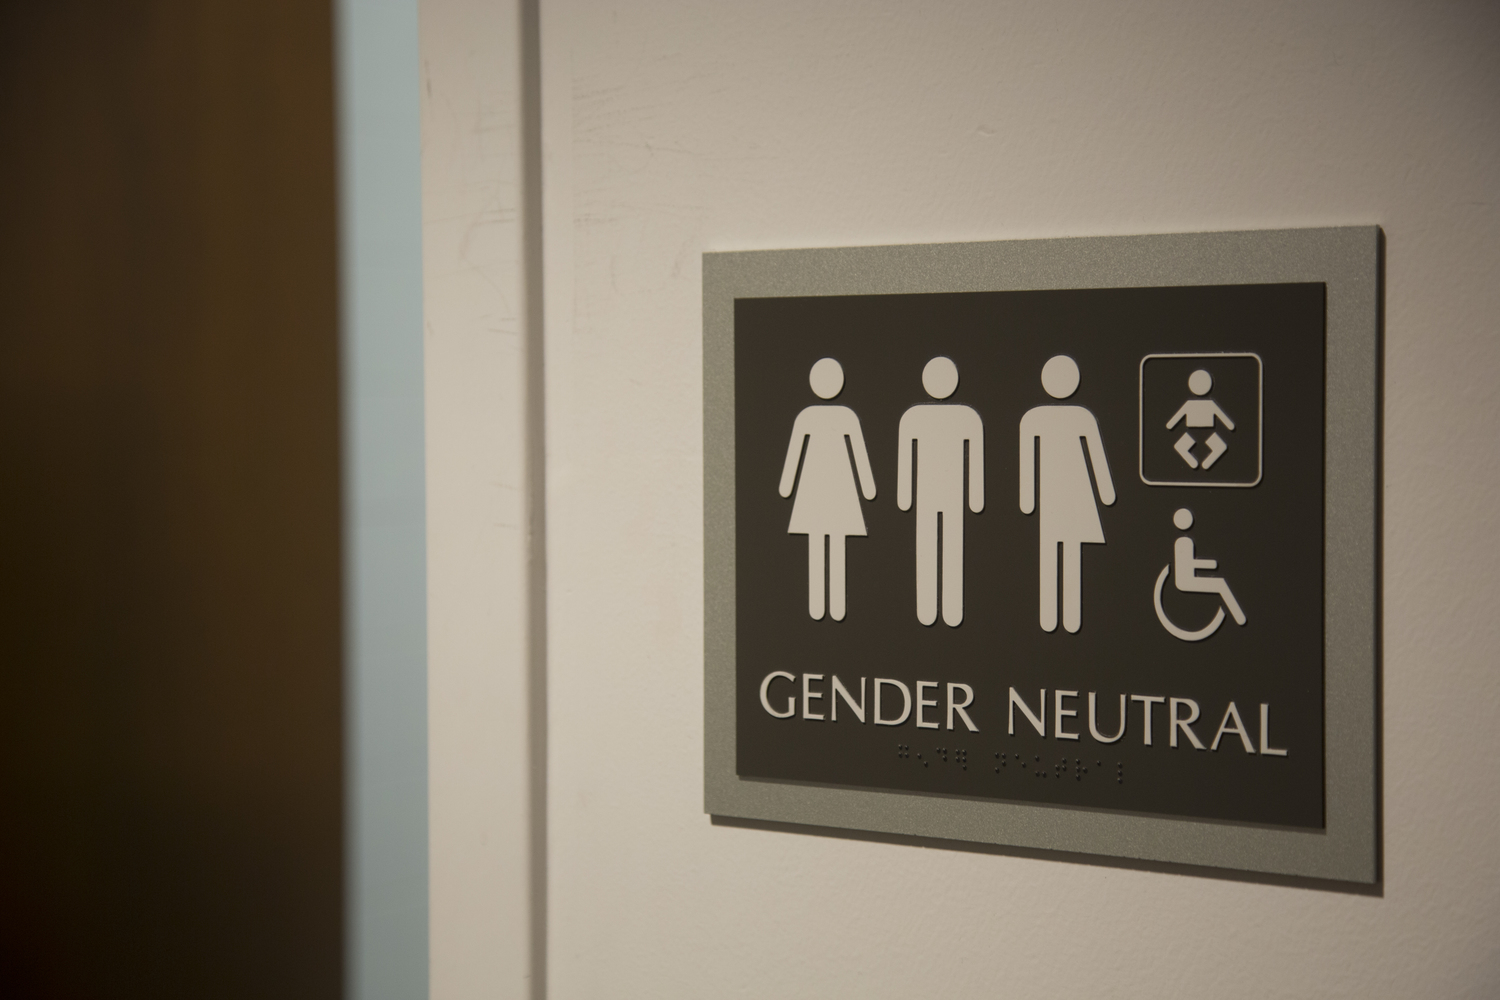 transgender bathroom access in the public and in the workplace